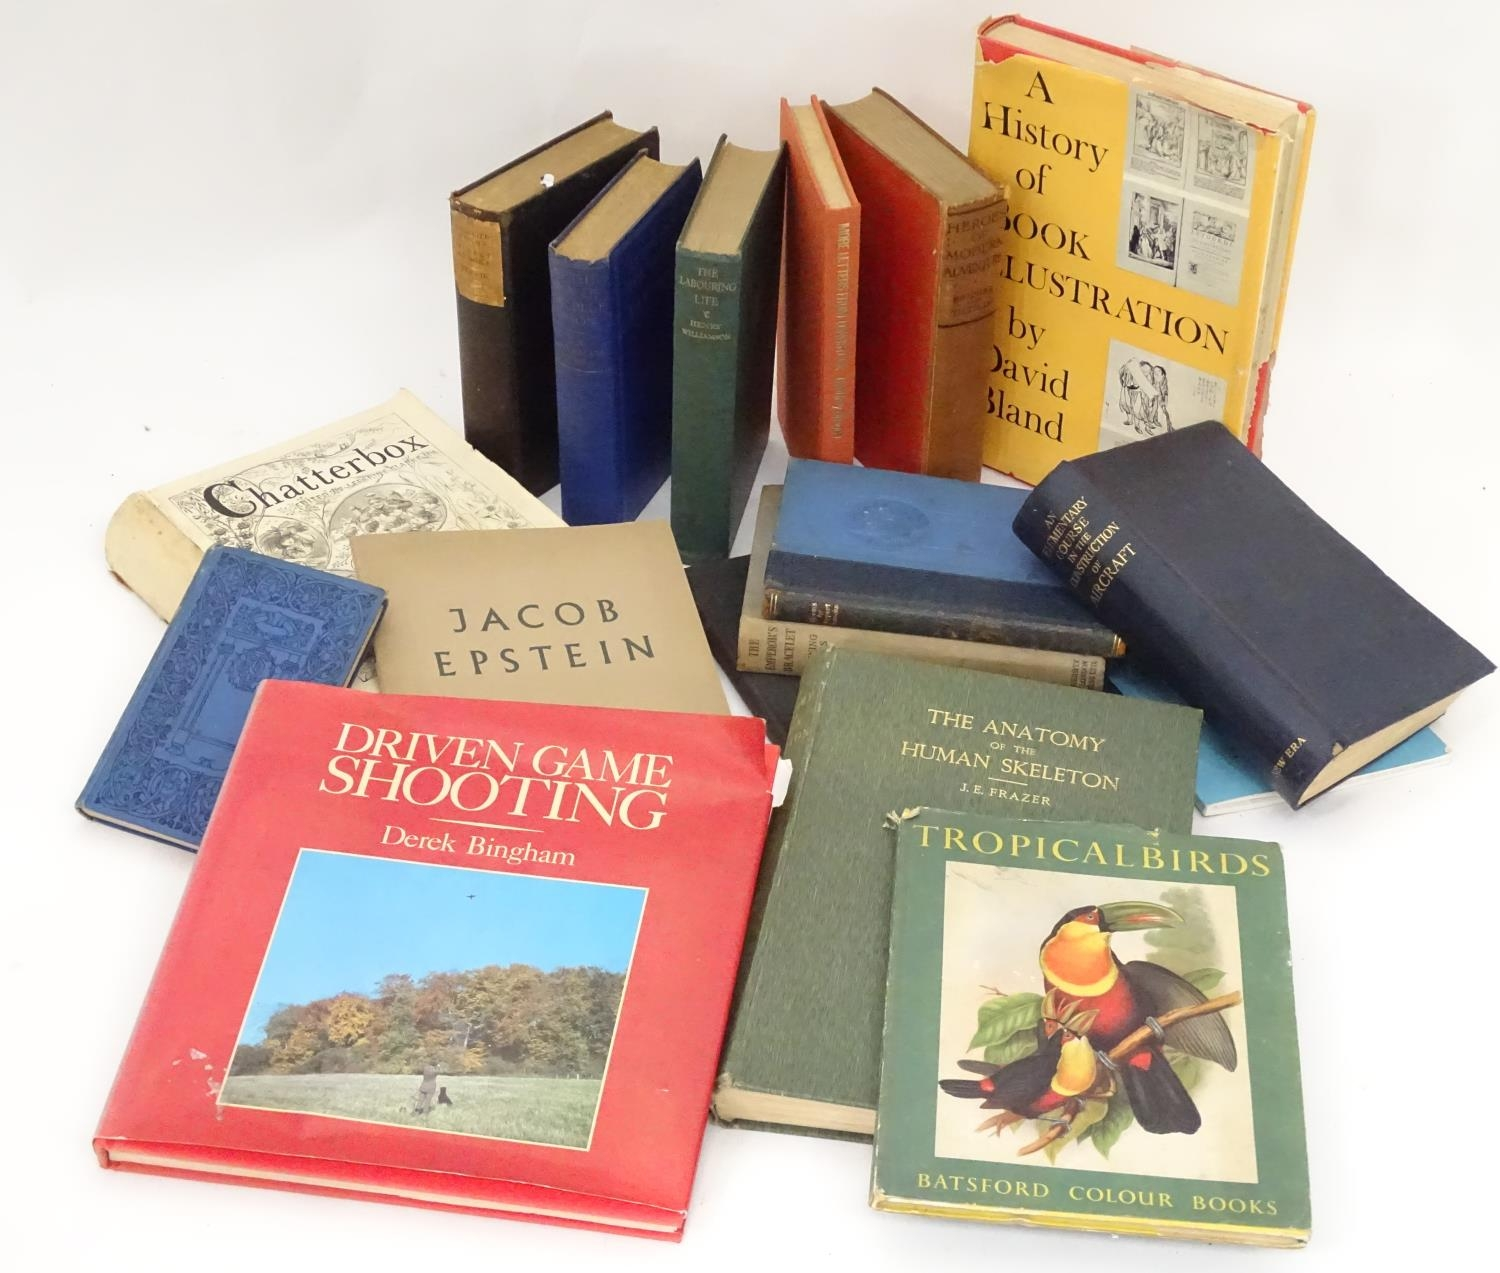 A quantity of assorted books to include The Anatomy of the Human Skeleton by J. E. Frazer,